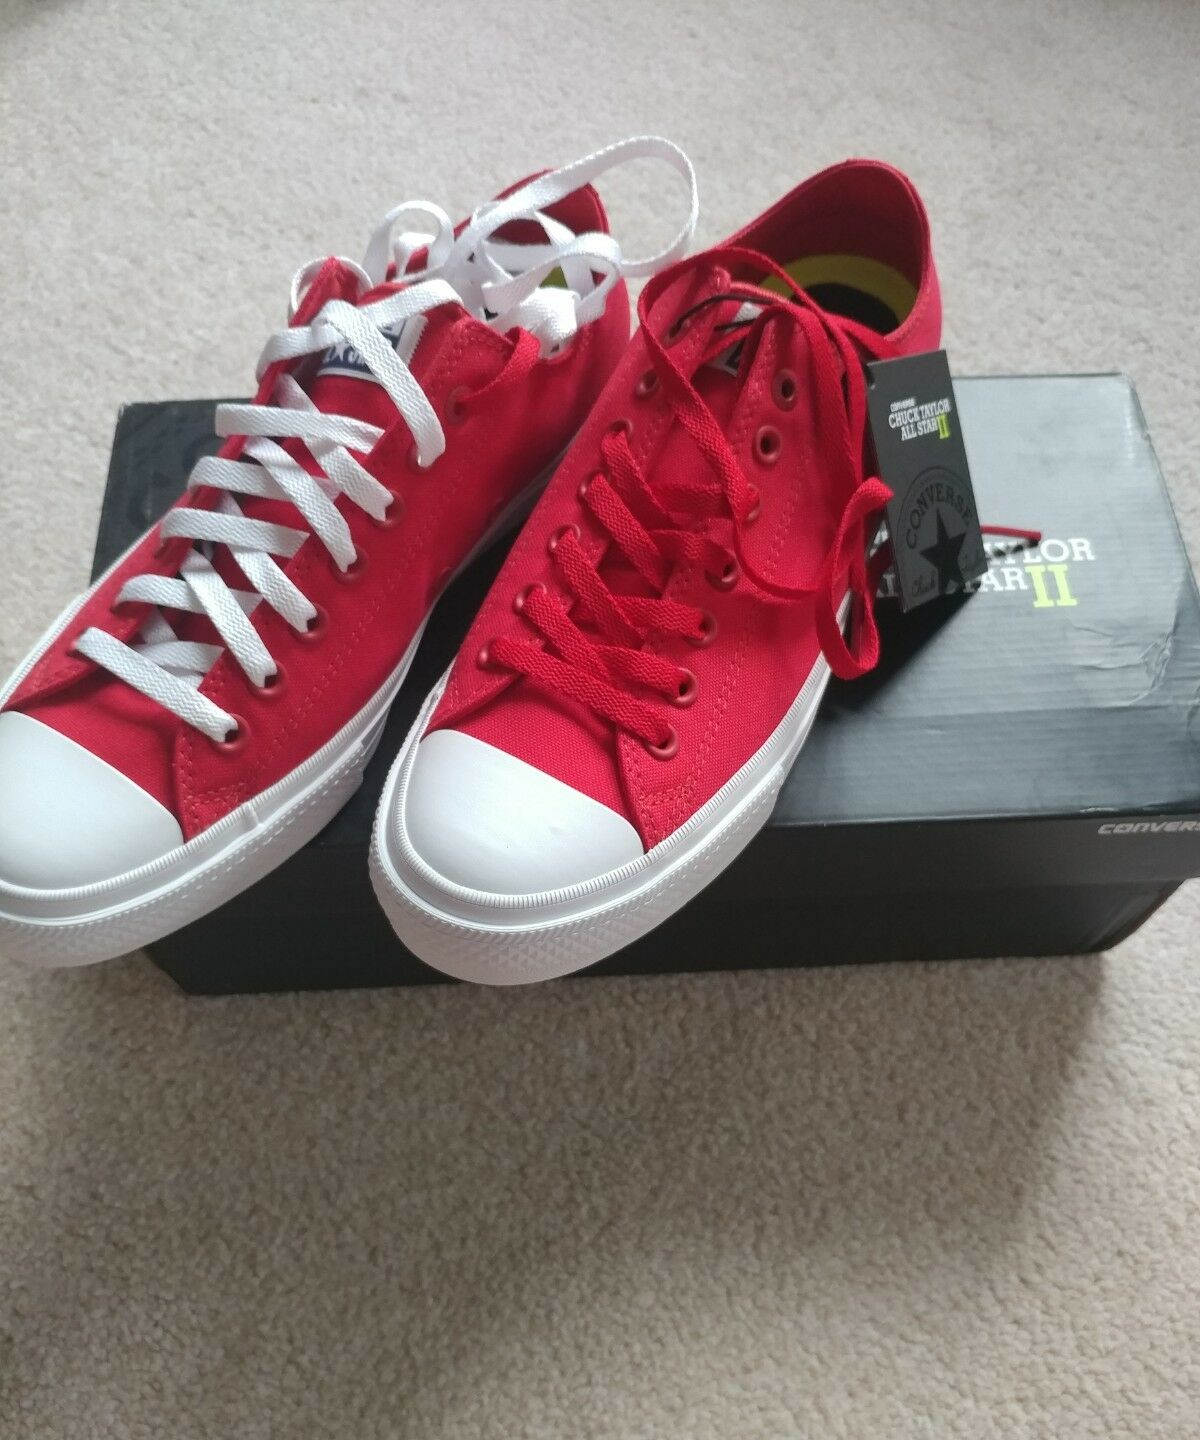 Converse Chuck Taylor All Star UK10 II 2 ROT Niedrig UK10 Star Euro44 NEW IN BOX e4f39b